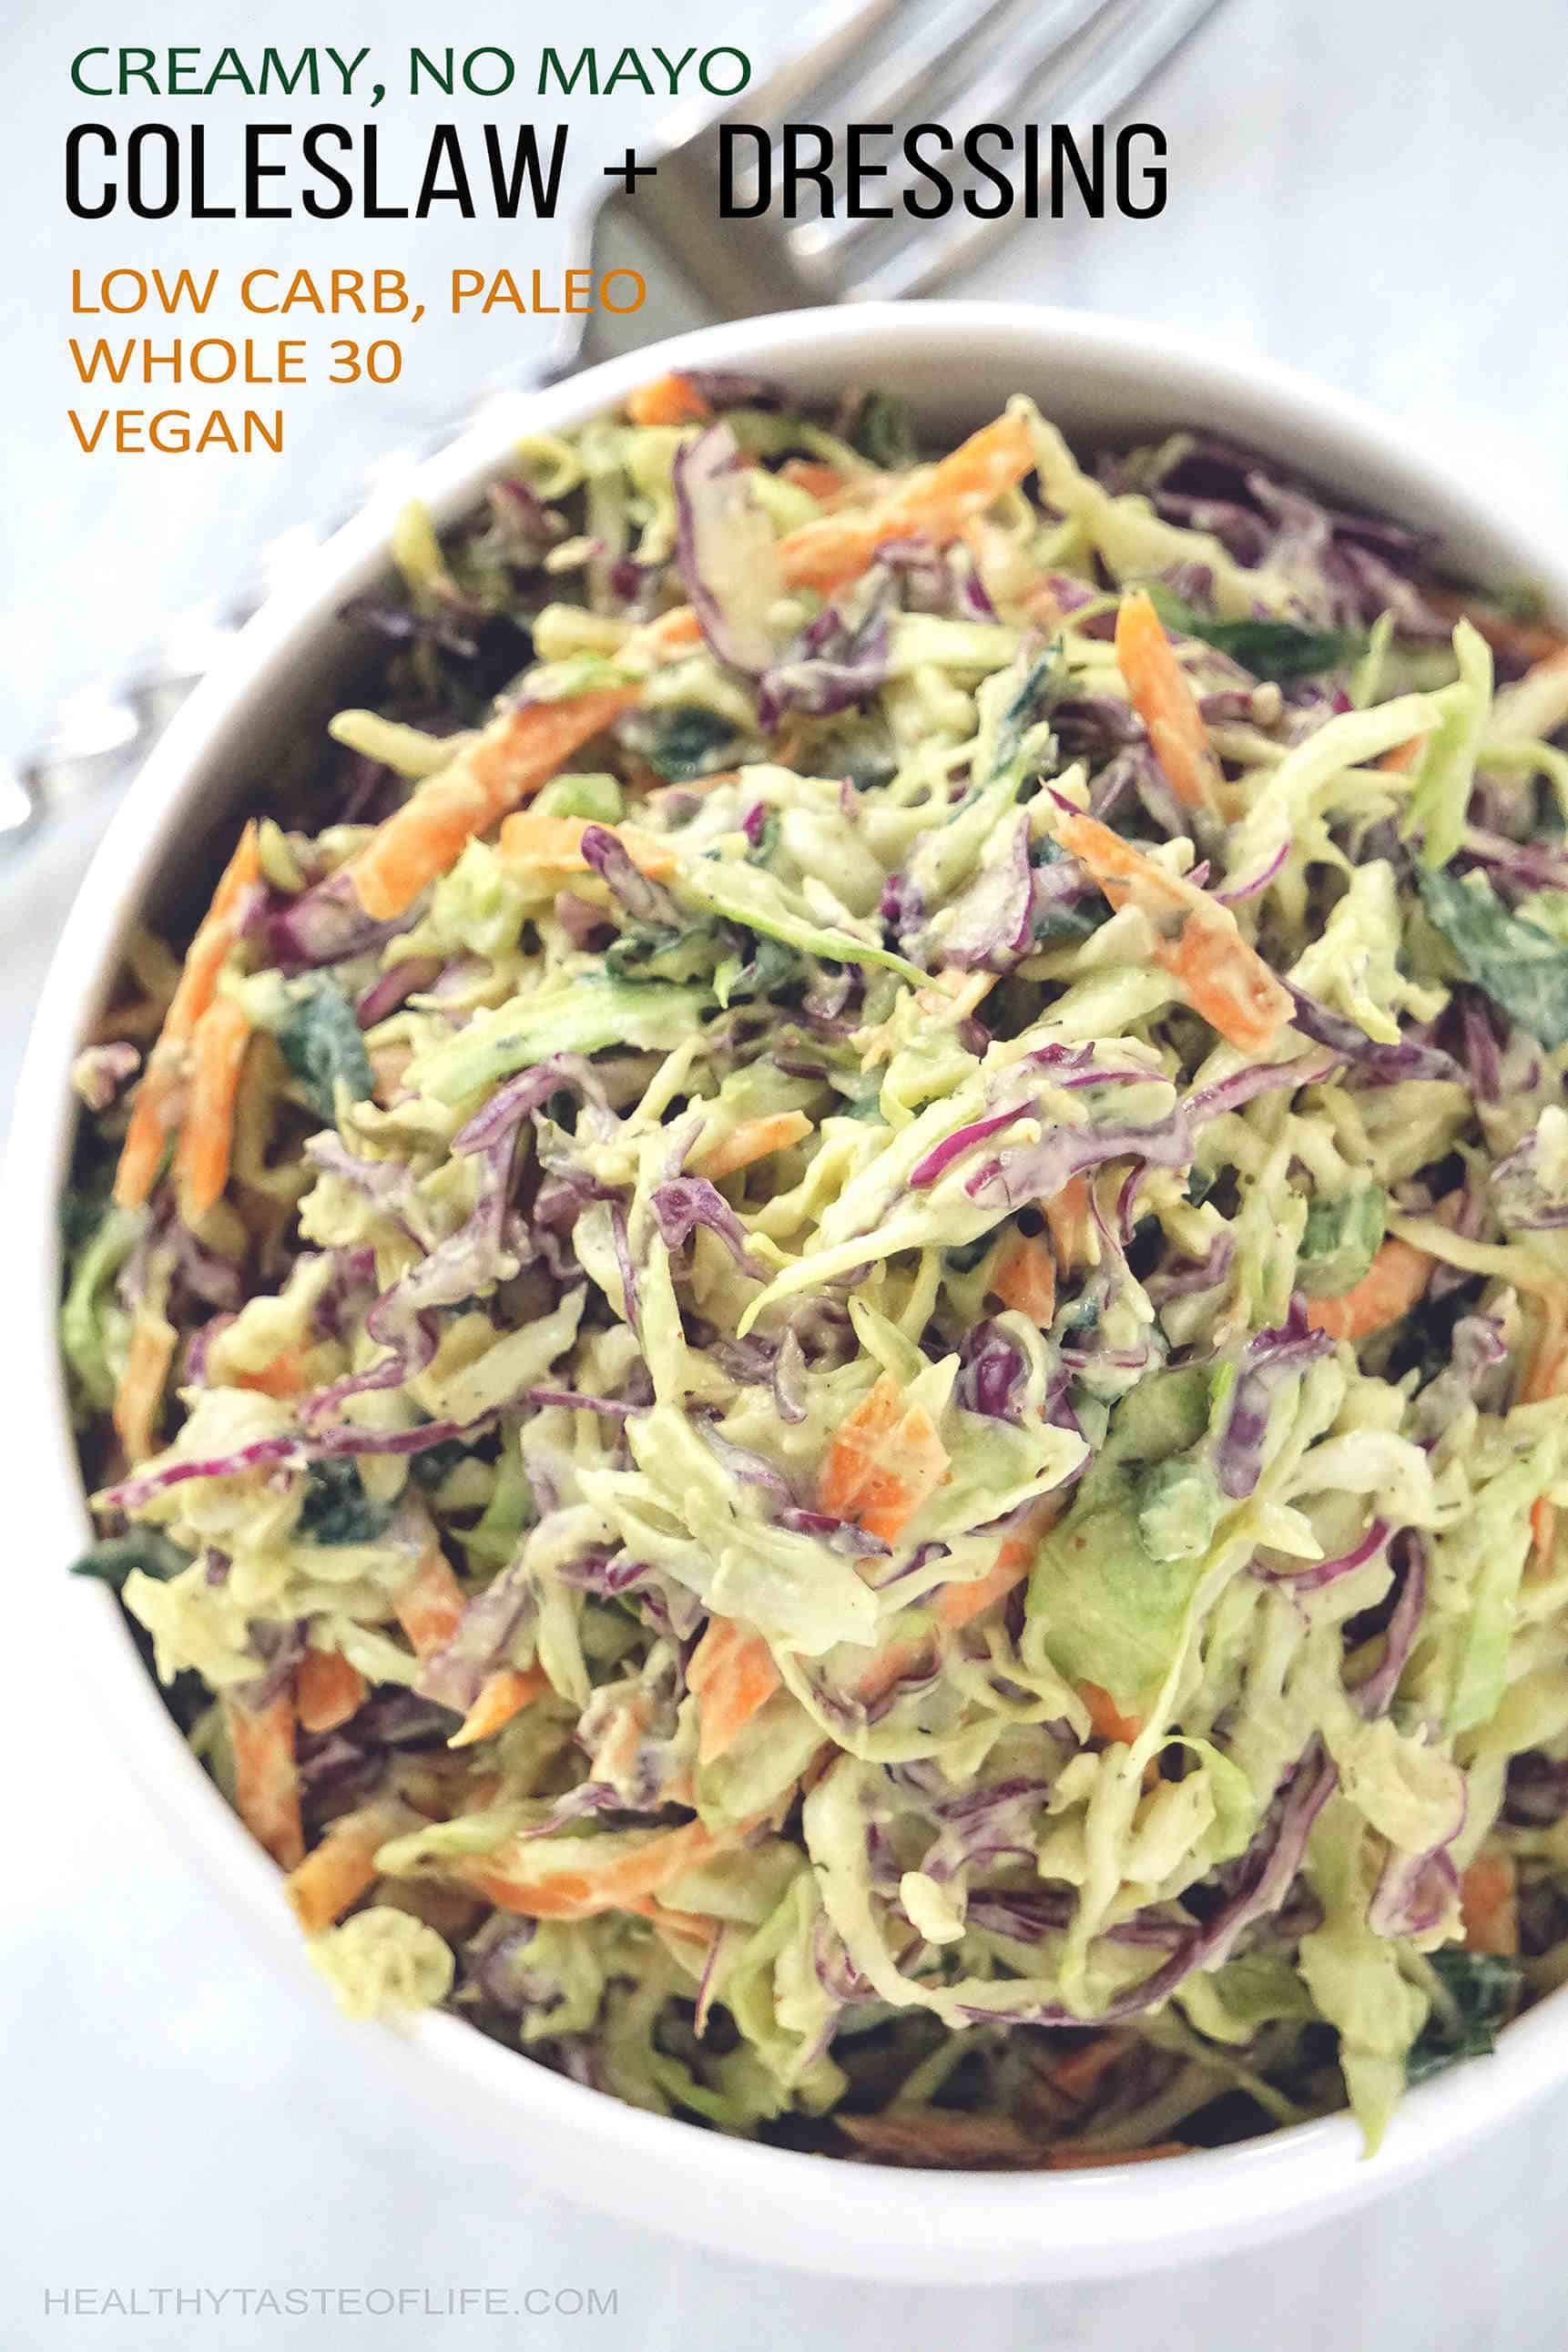 Healthy creamy whole30 coleslaw with no mayo dressing, a vegan, low carb salad recipe.